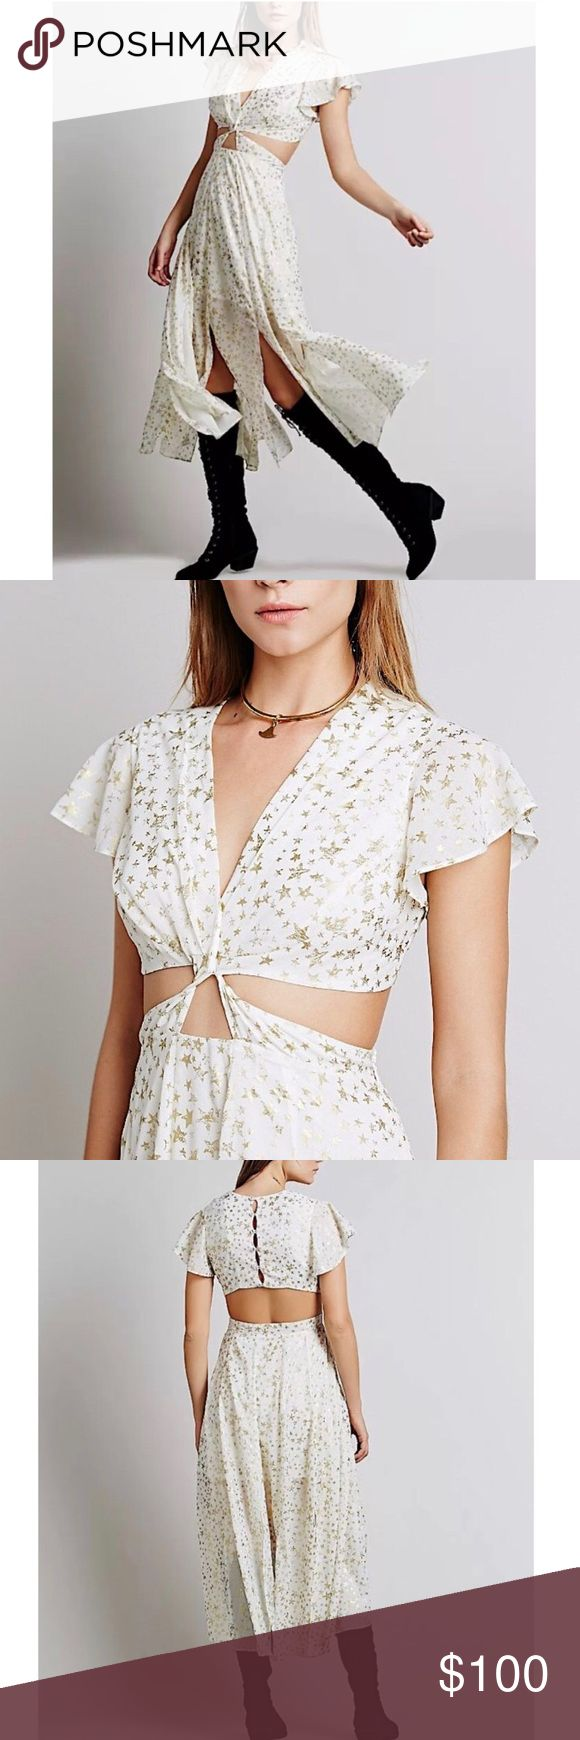 FREE PEOPLE PARTY DRESS SIZE XS-S Brand new without tags. Beautiful beige maxi dress featuring lightweight fabric and fluttering sleeves. Distressed printed gold star design throughout with shimmering tone. Plunging neckline and open cutout detailing at midsection. Dainty skirt includes paneled slits and hidden side zipper. Button down closure at upper back. Self lined upper and skirt size 2 or s-xs. Price is relatively firm. Decent offers only please! Free People Dresses Maxi